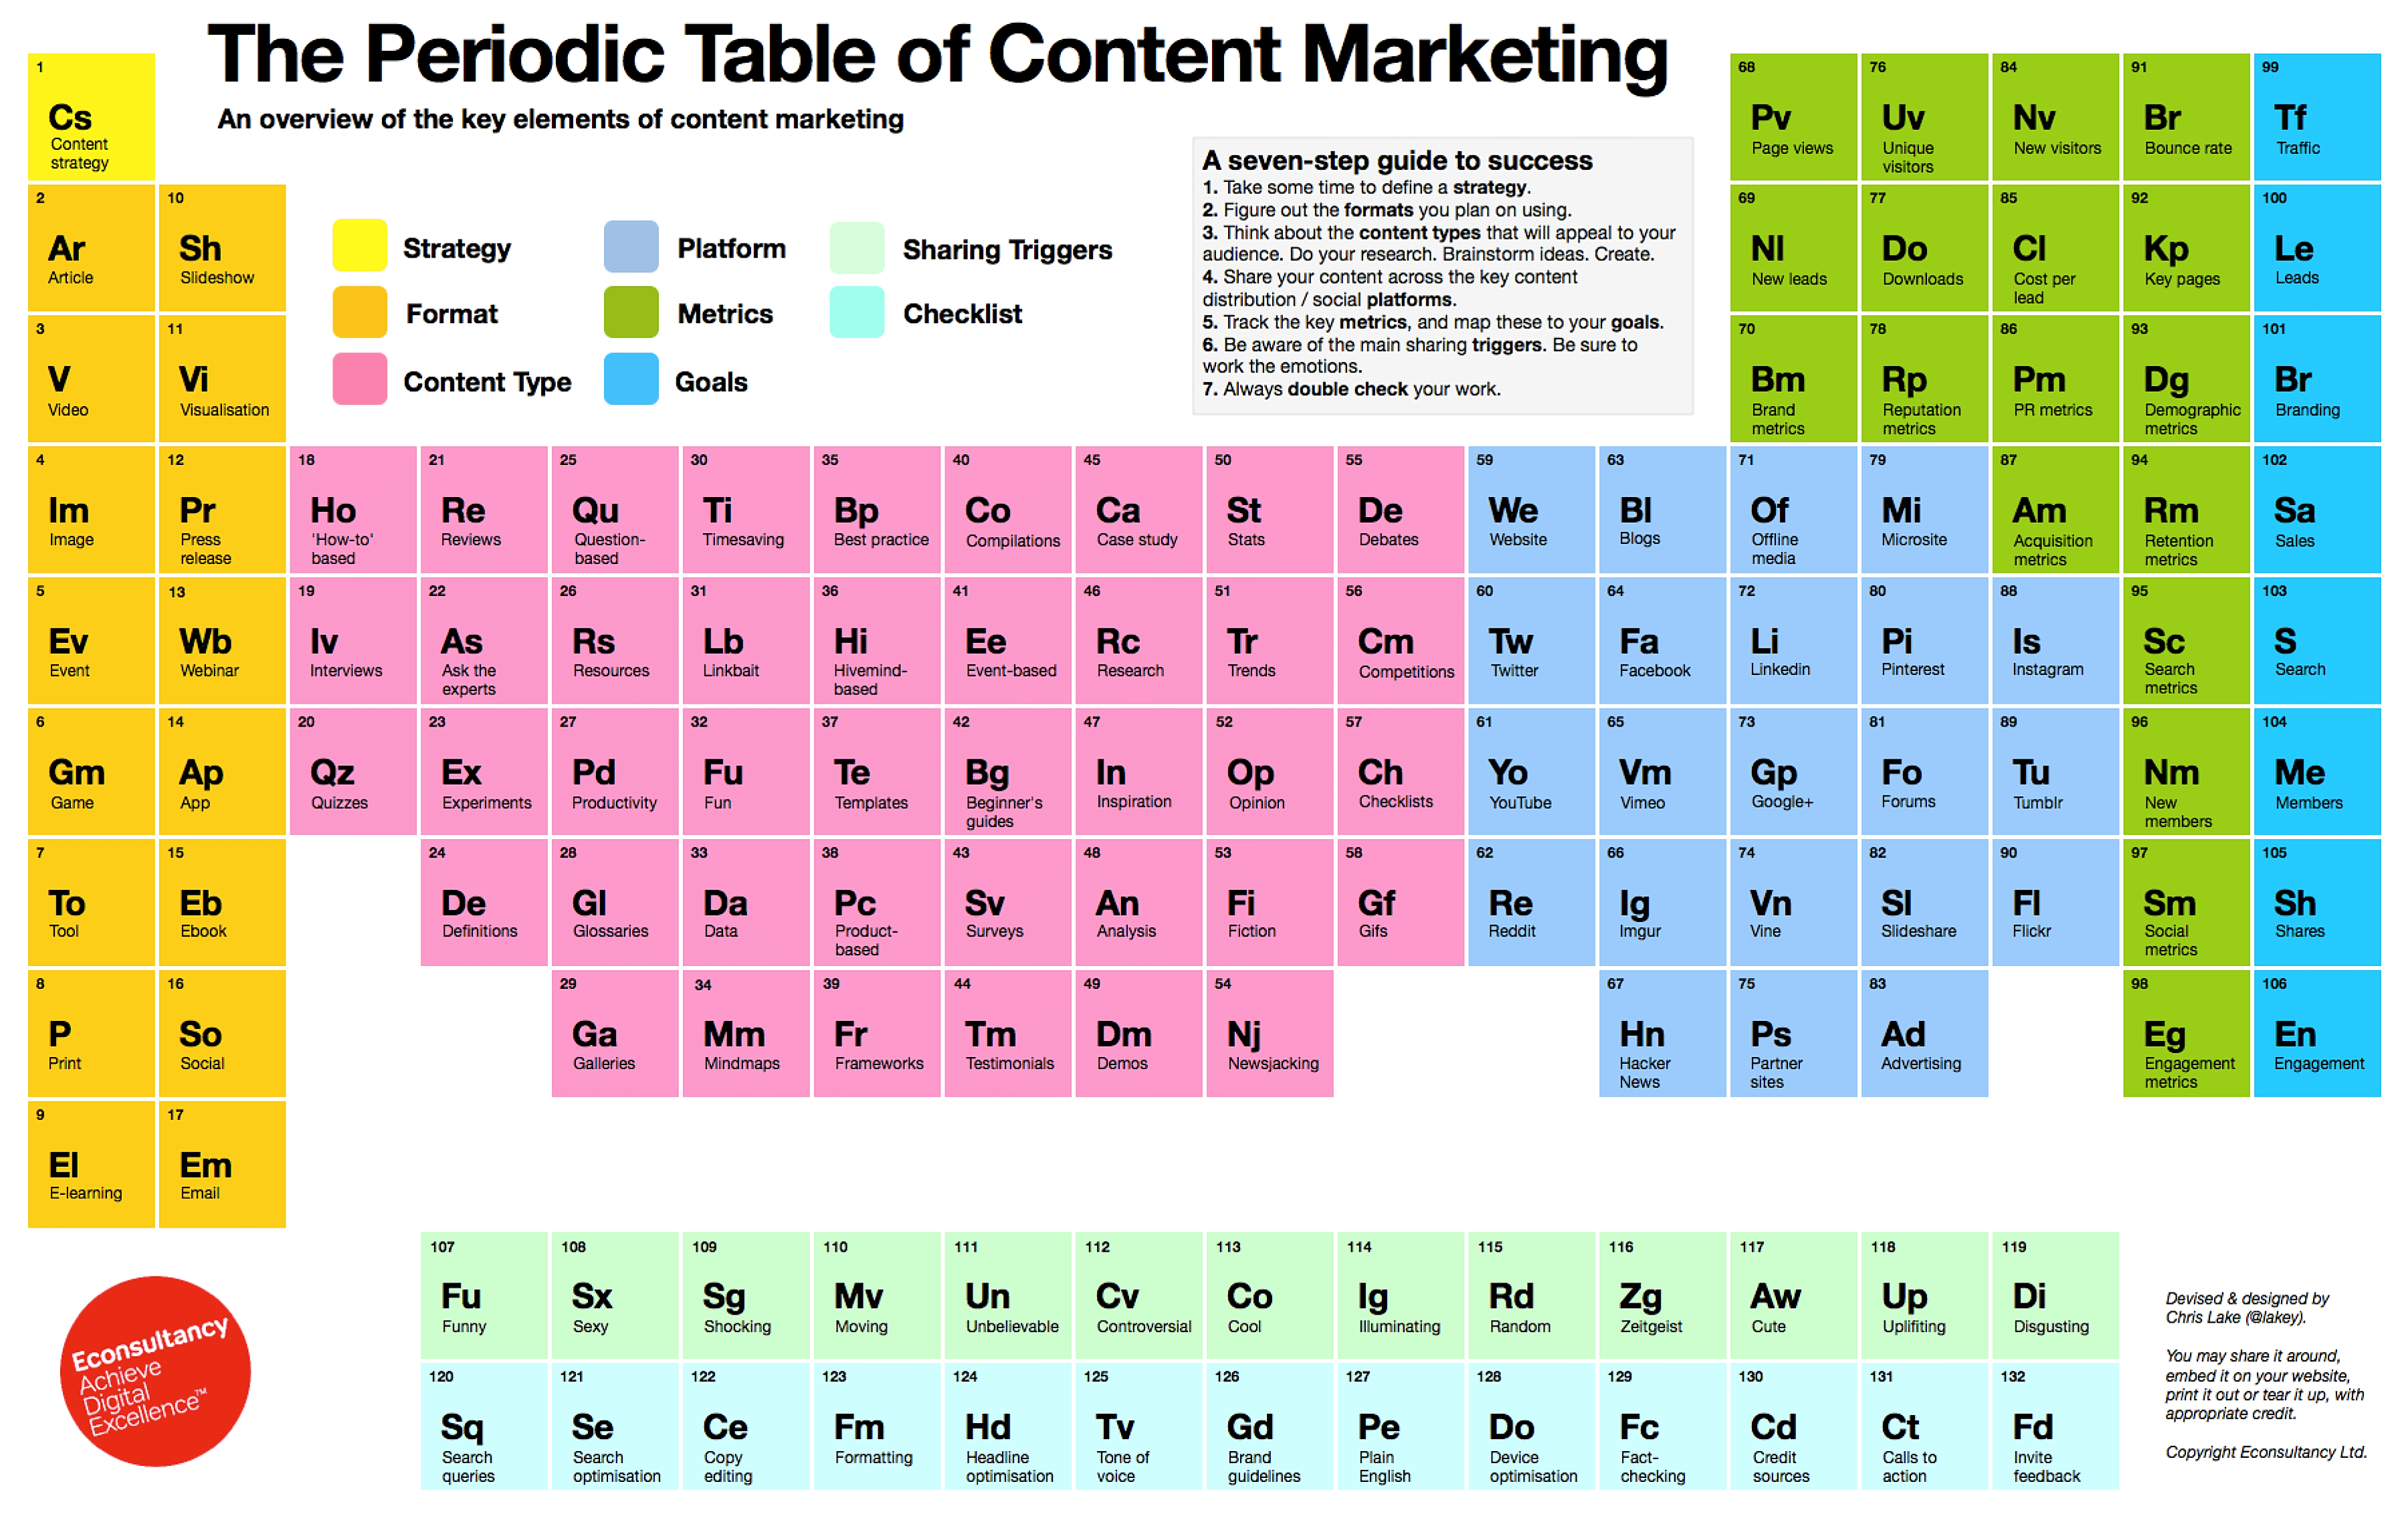 Wonderful At First Glance, This U0027periodic Table Of Content Marketingu0027 From Chris Lake  At Econsultancy Looks Like Yet More Content Marketing Nonsense.